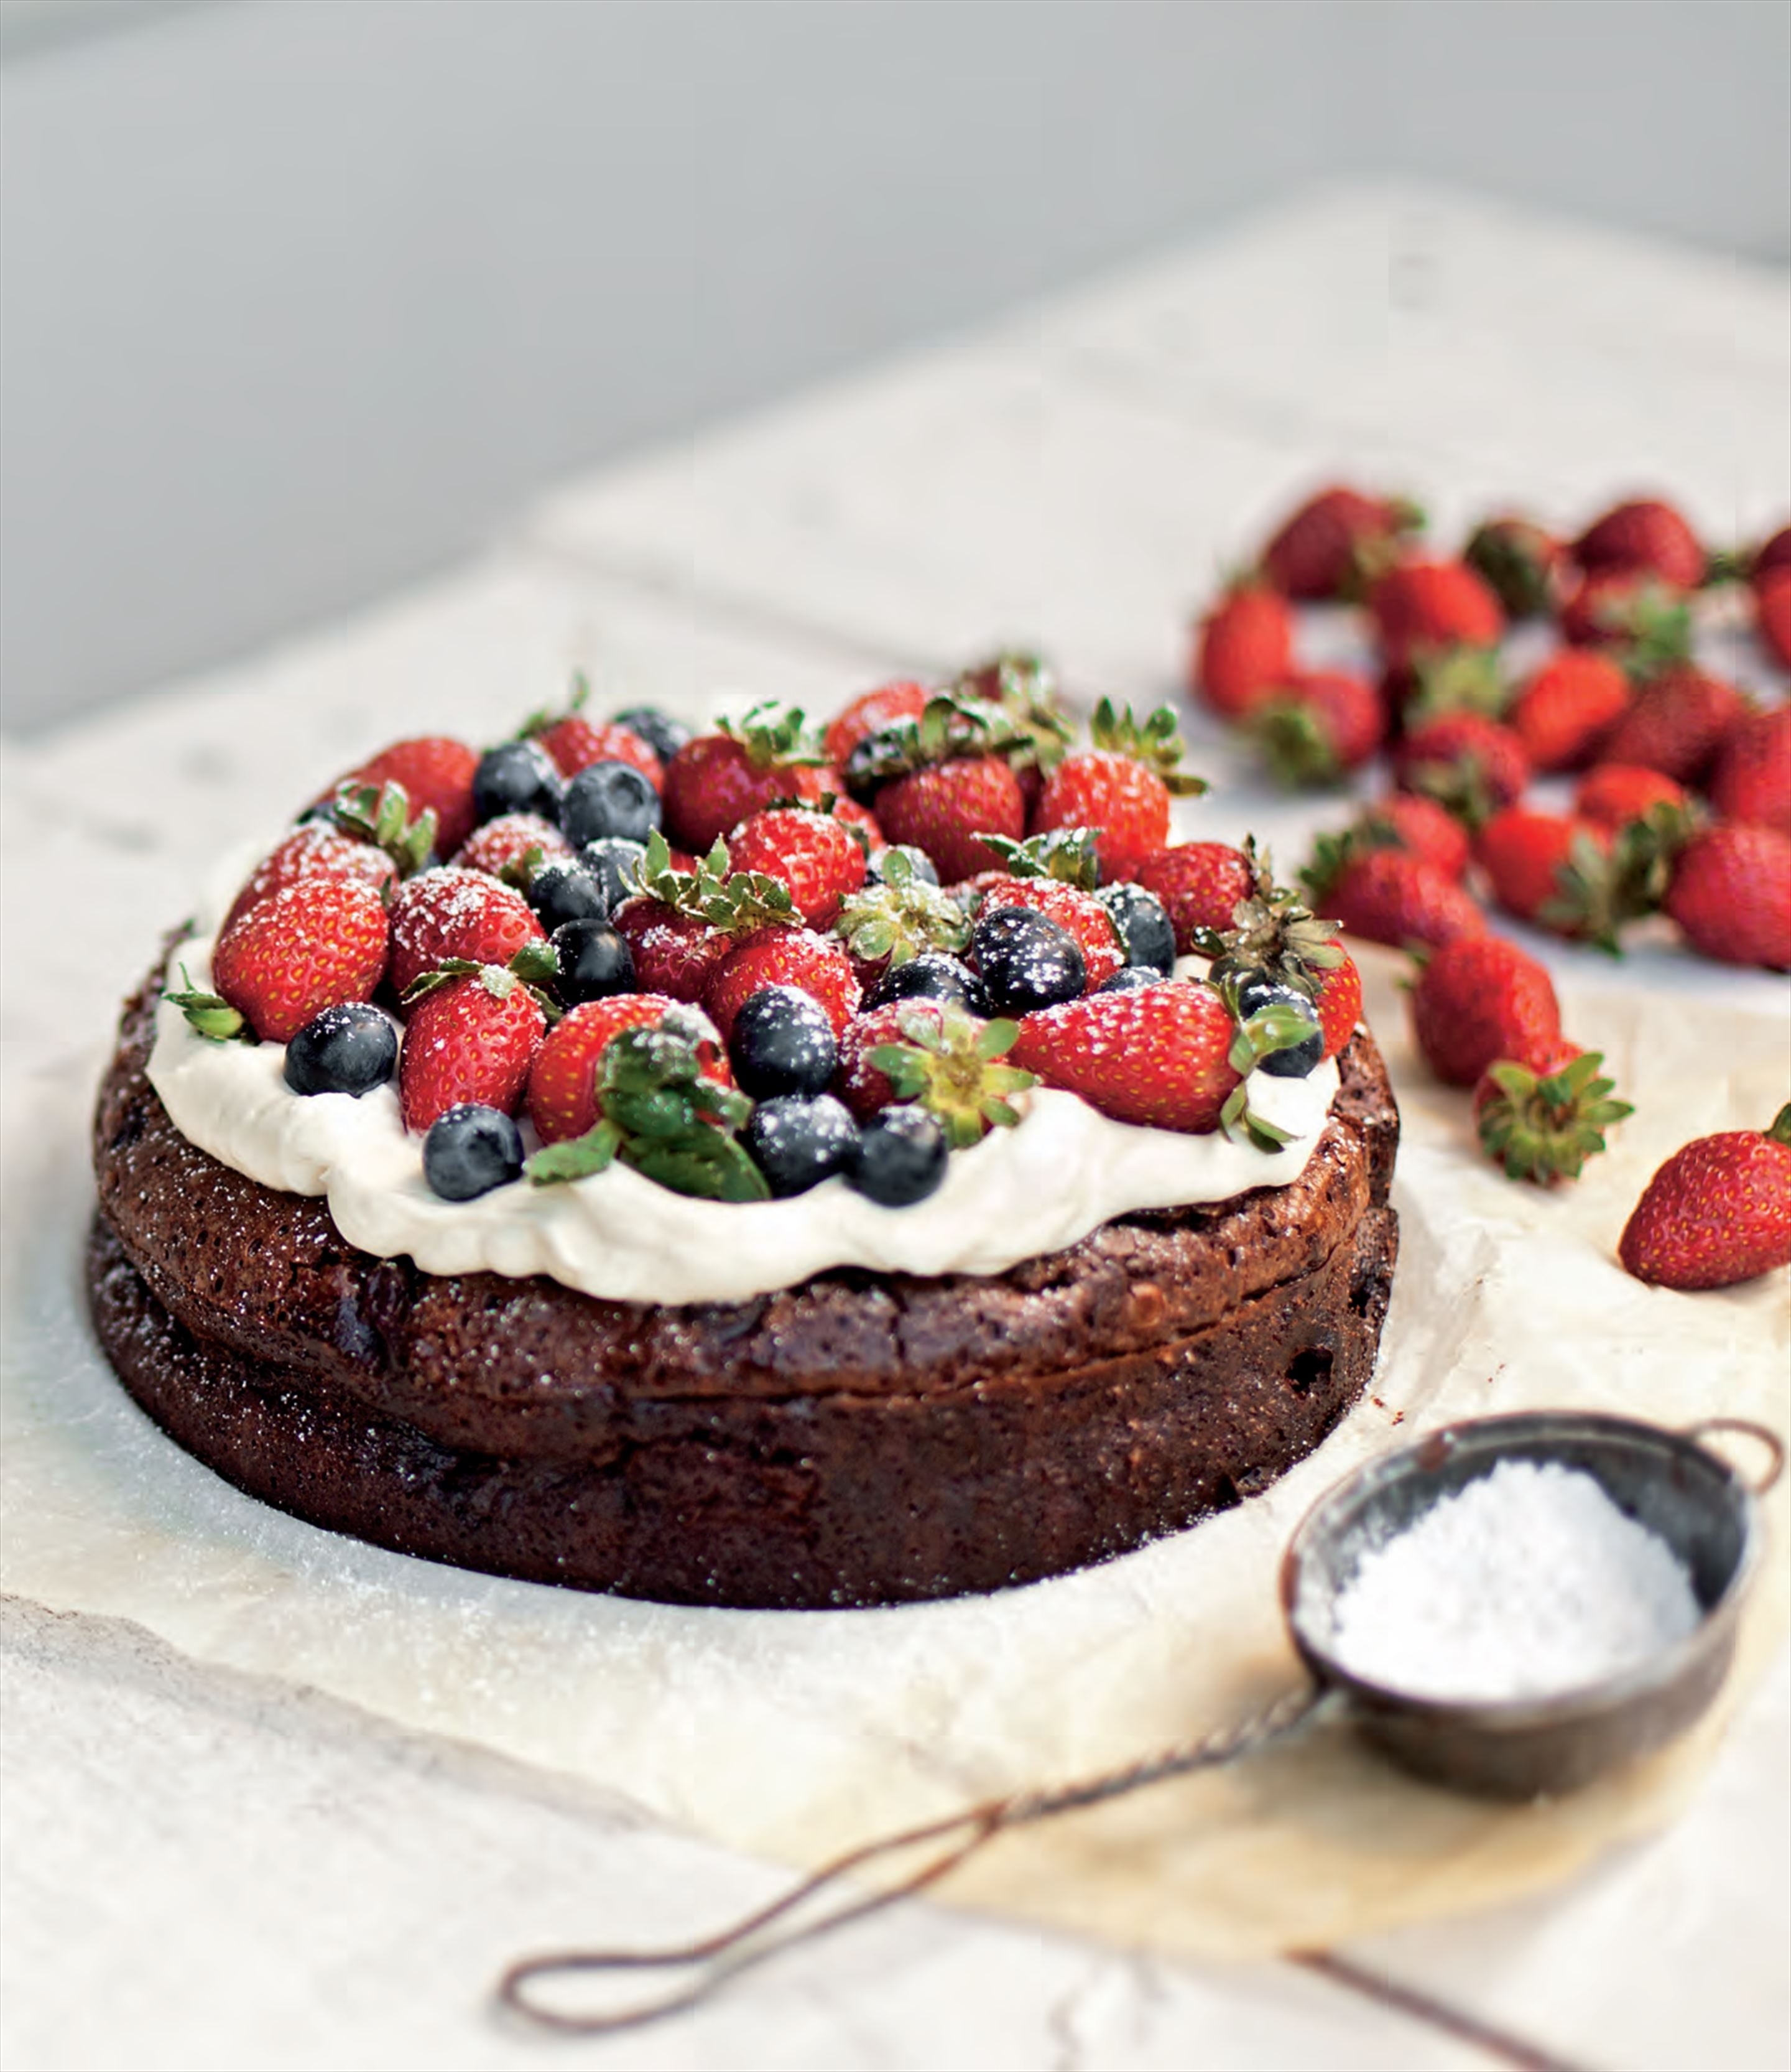 Flourless chocolate cake with morello cherries